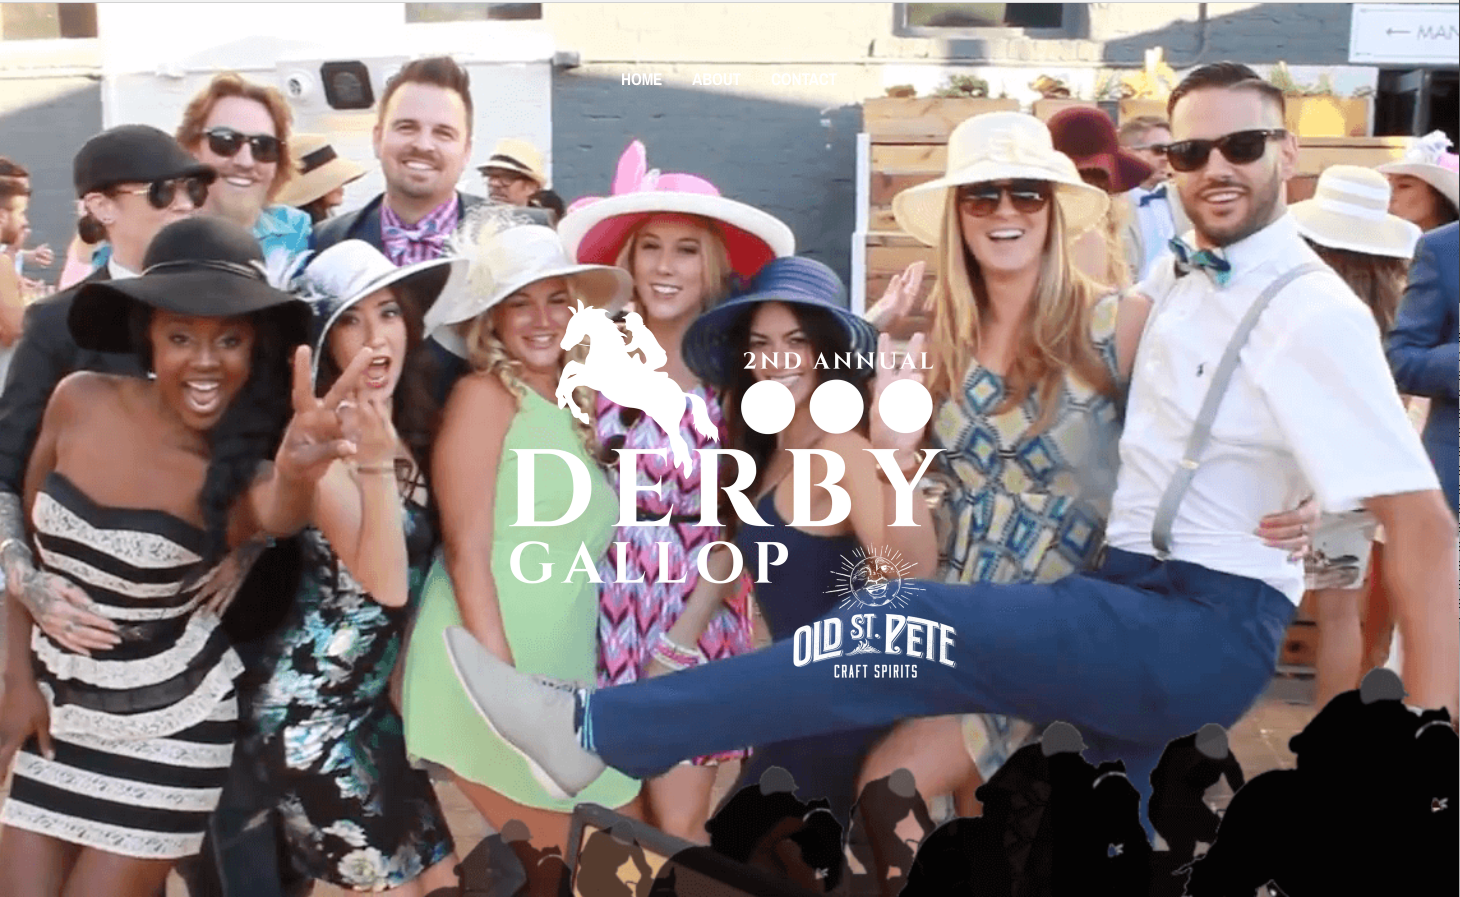 2nd Annual Derby Gallop